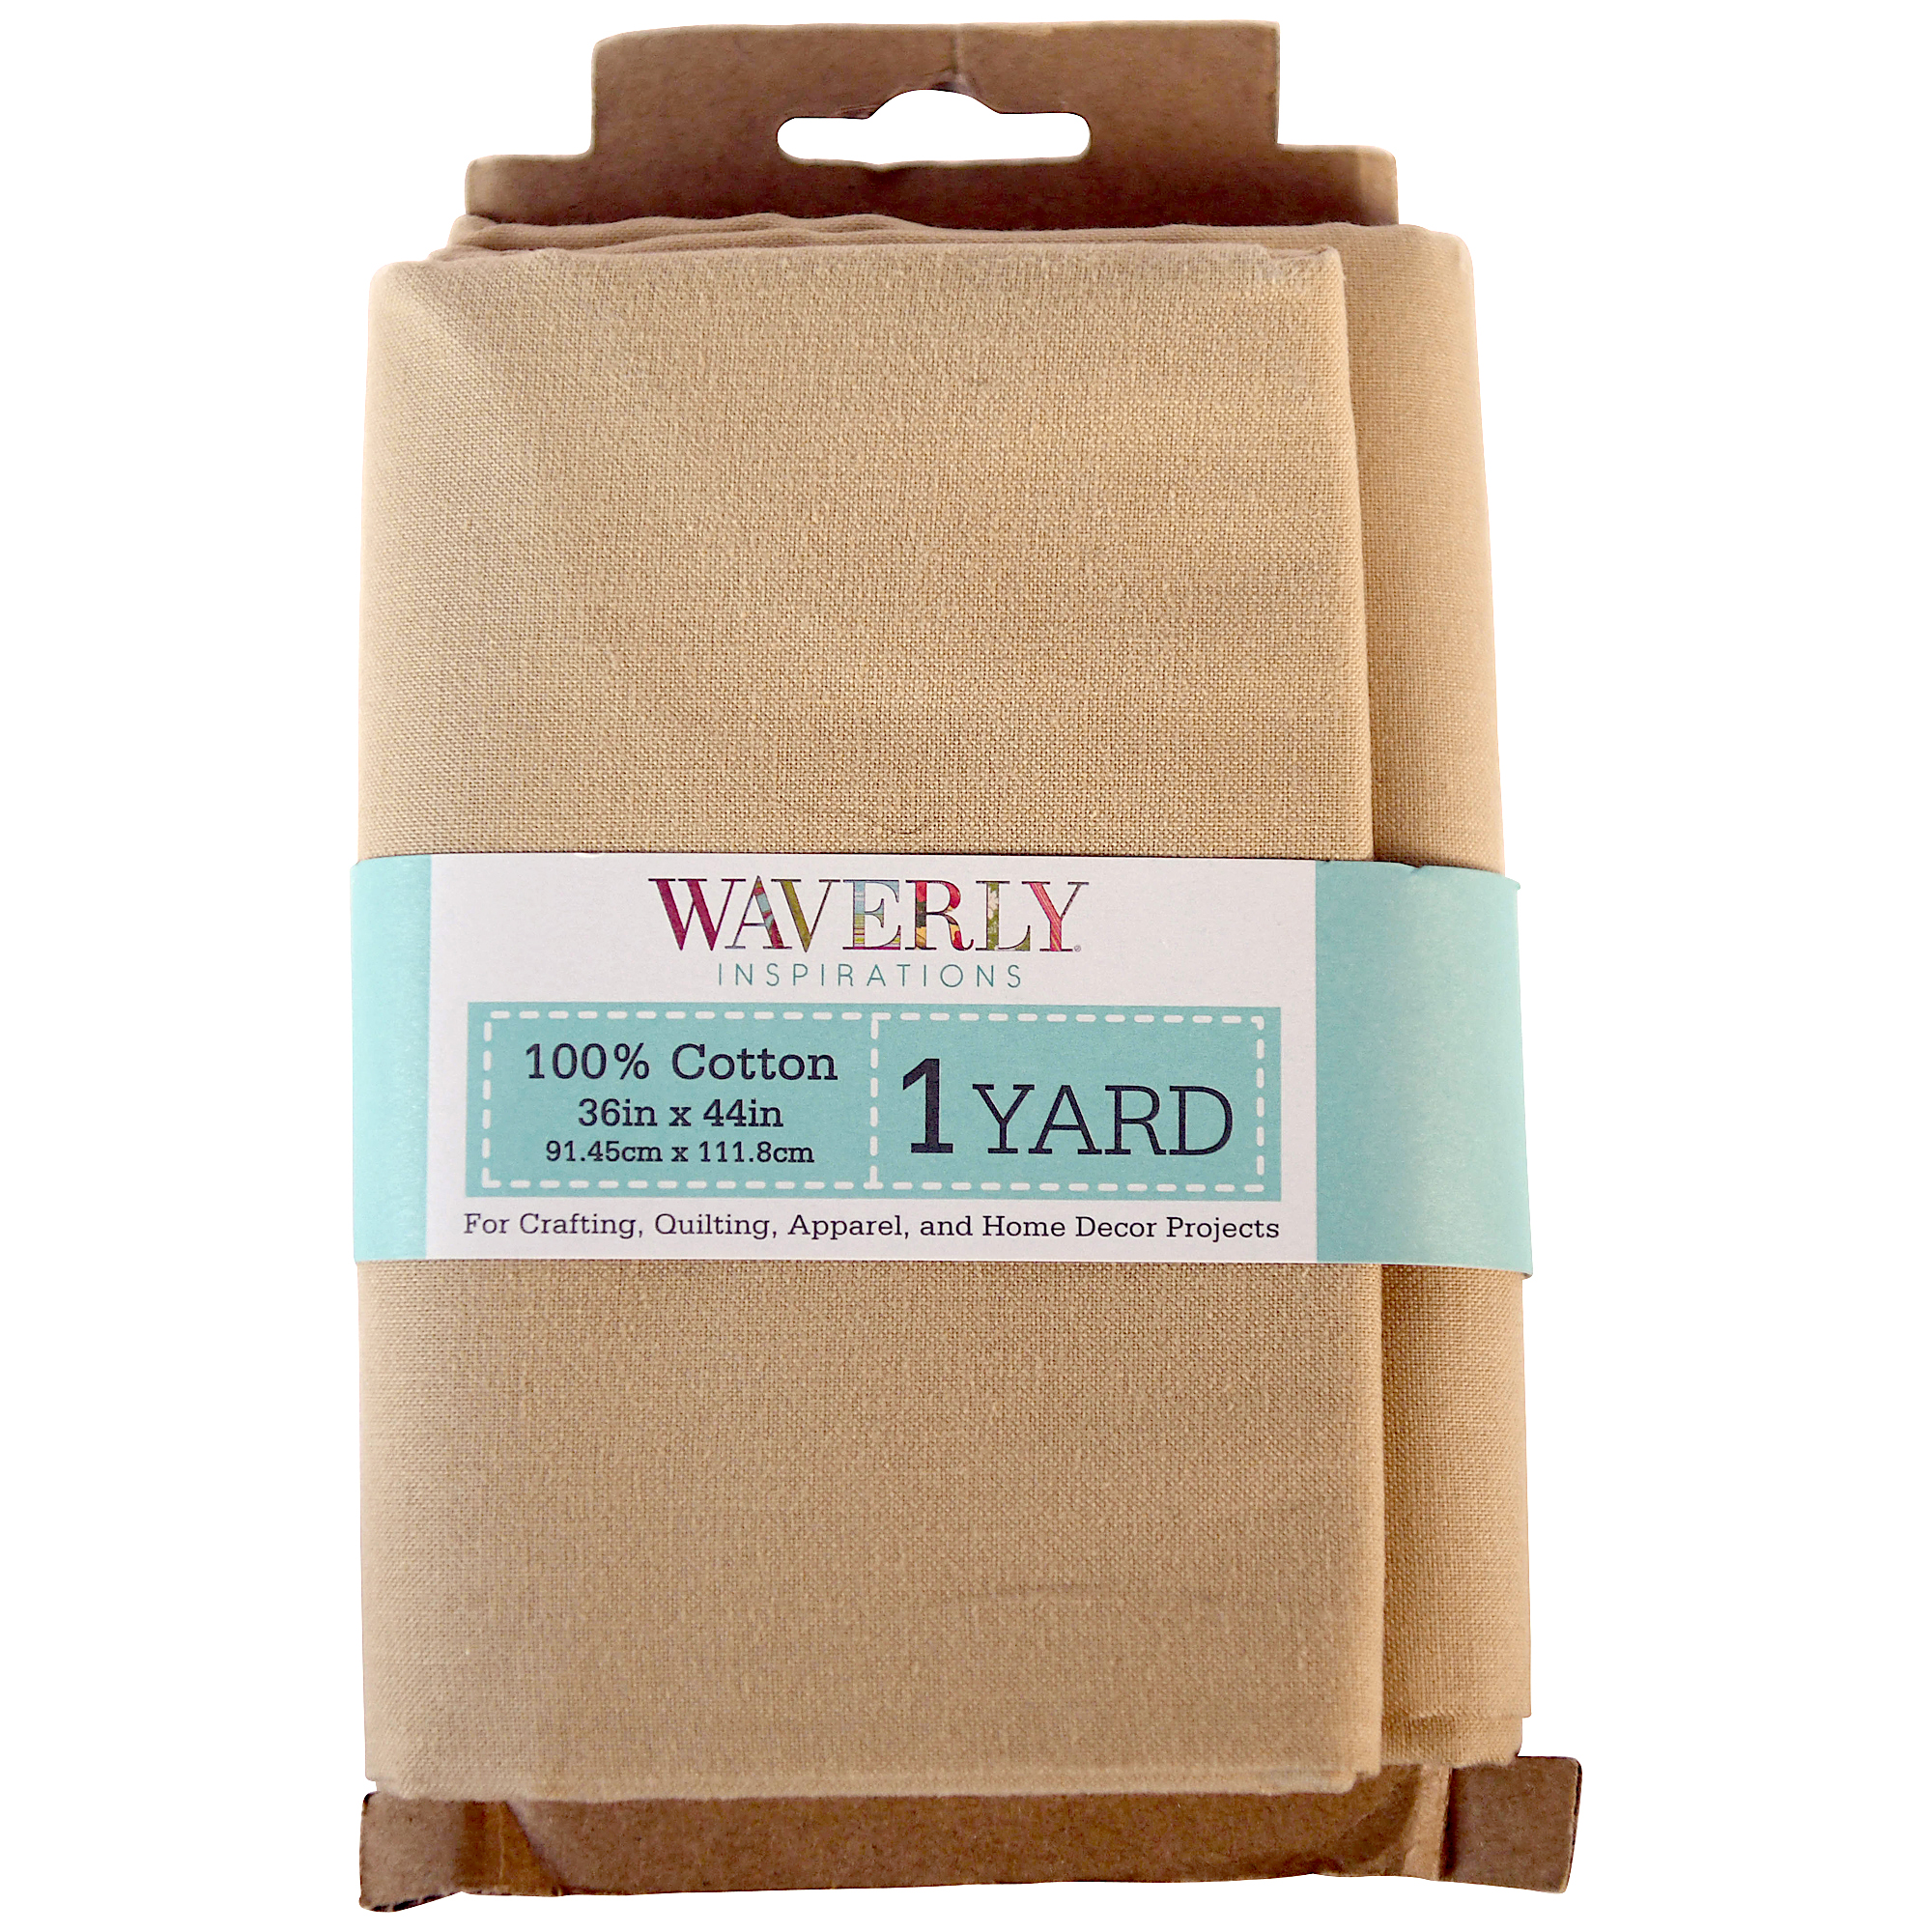 Waverly Inspirations Cotton Solid Tan Fabric, 1 Yd.